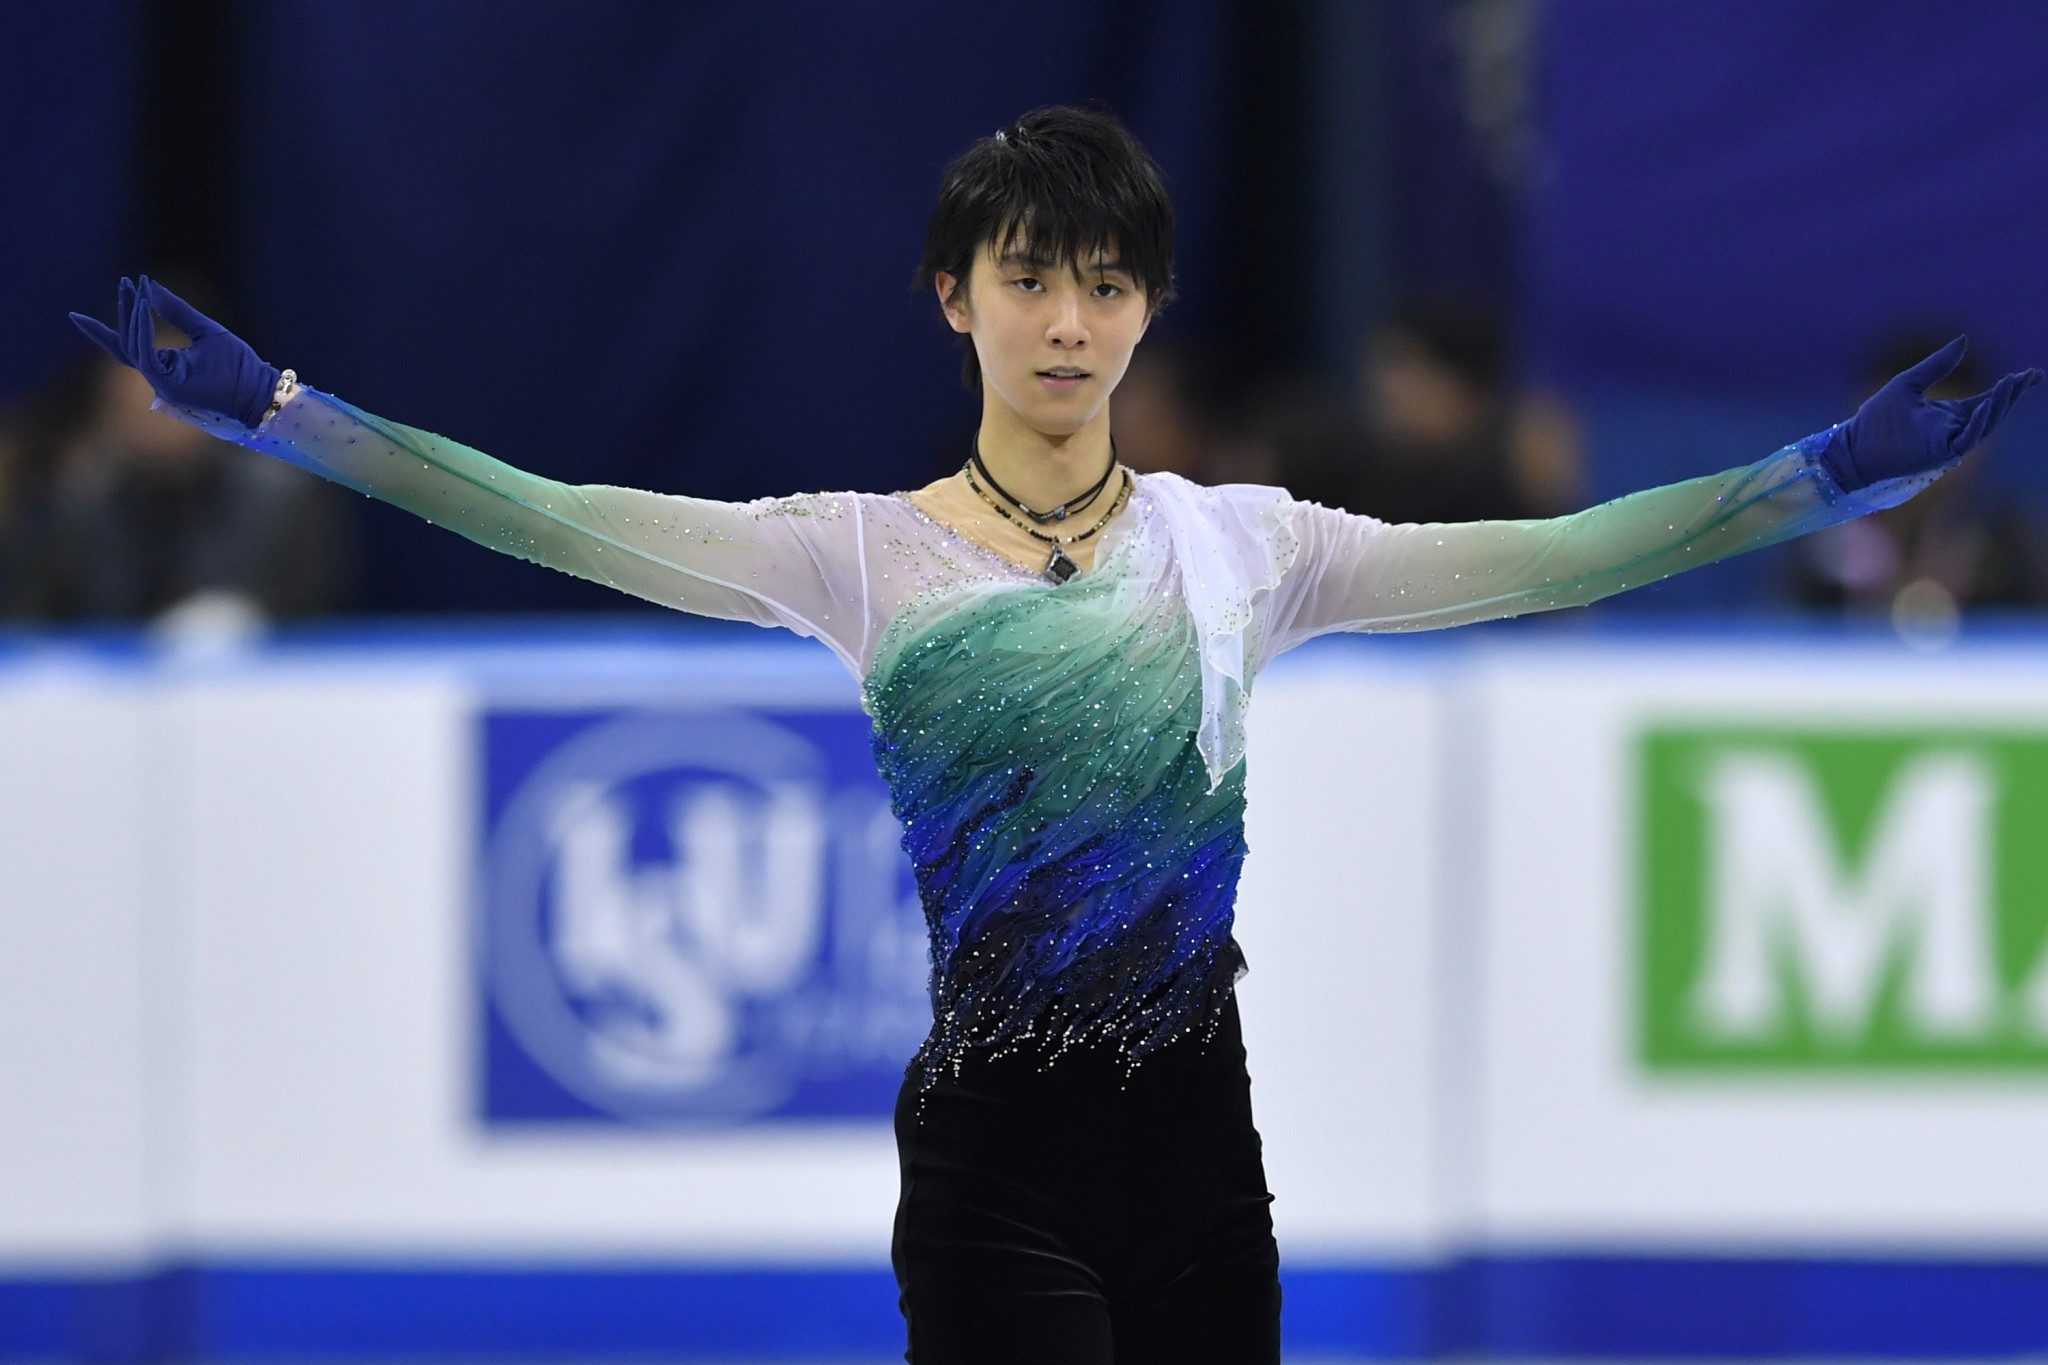 Videos featuring figure skater Hanyu performing off-ice reach one million views